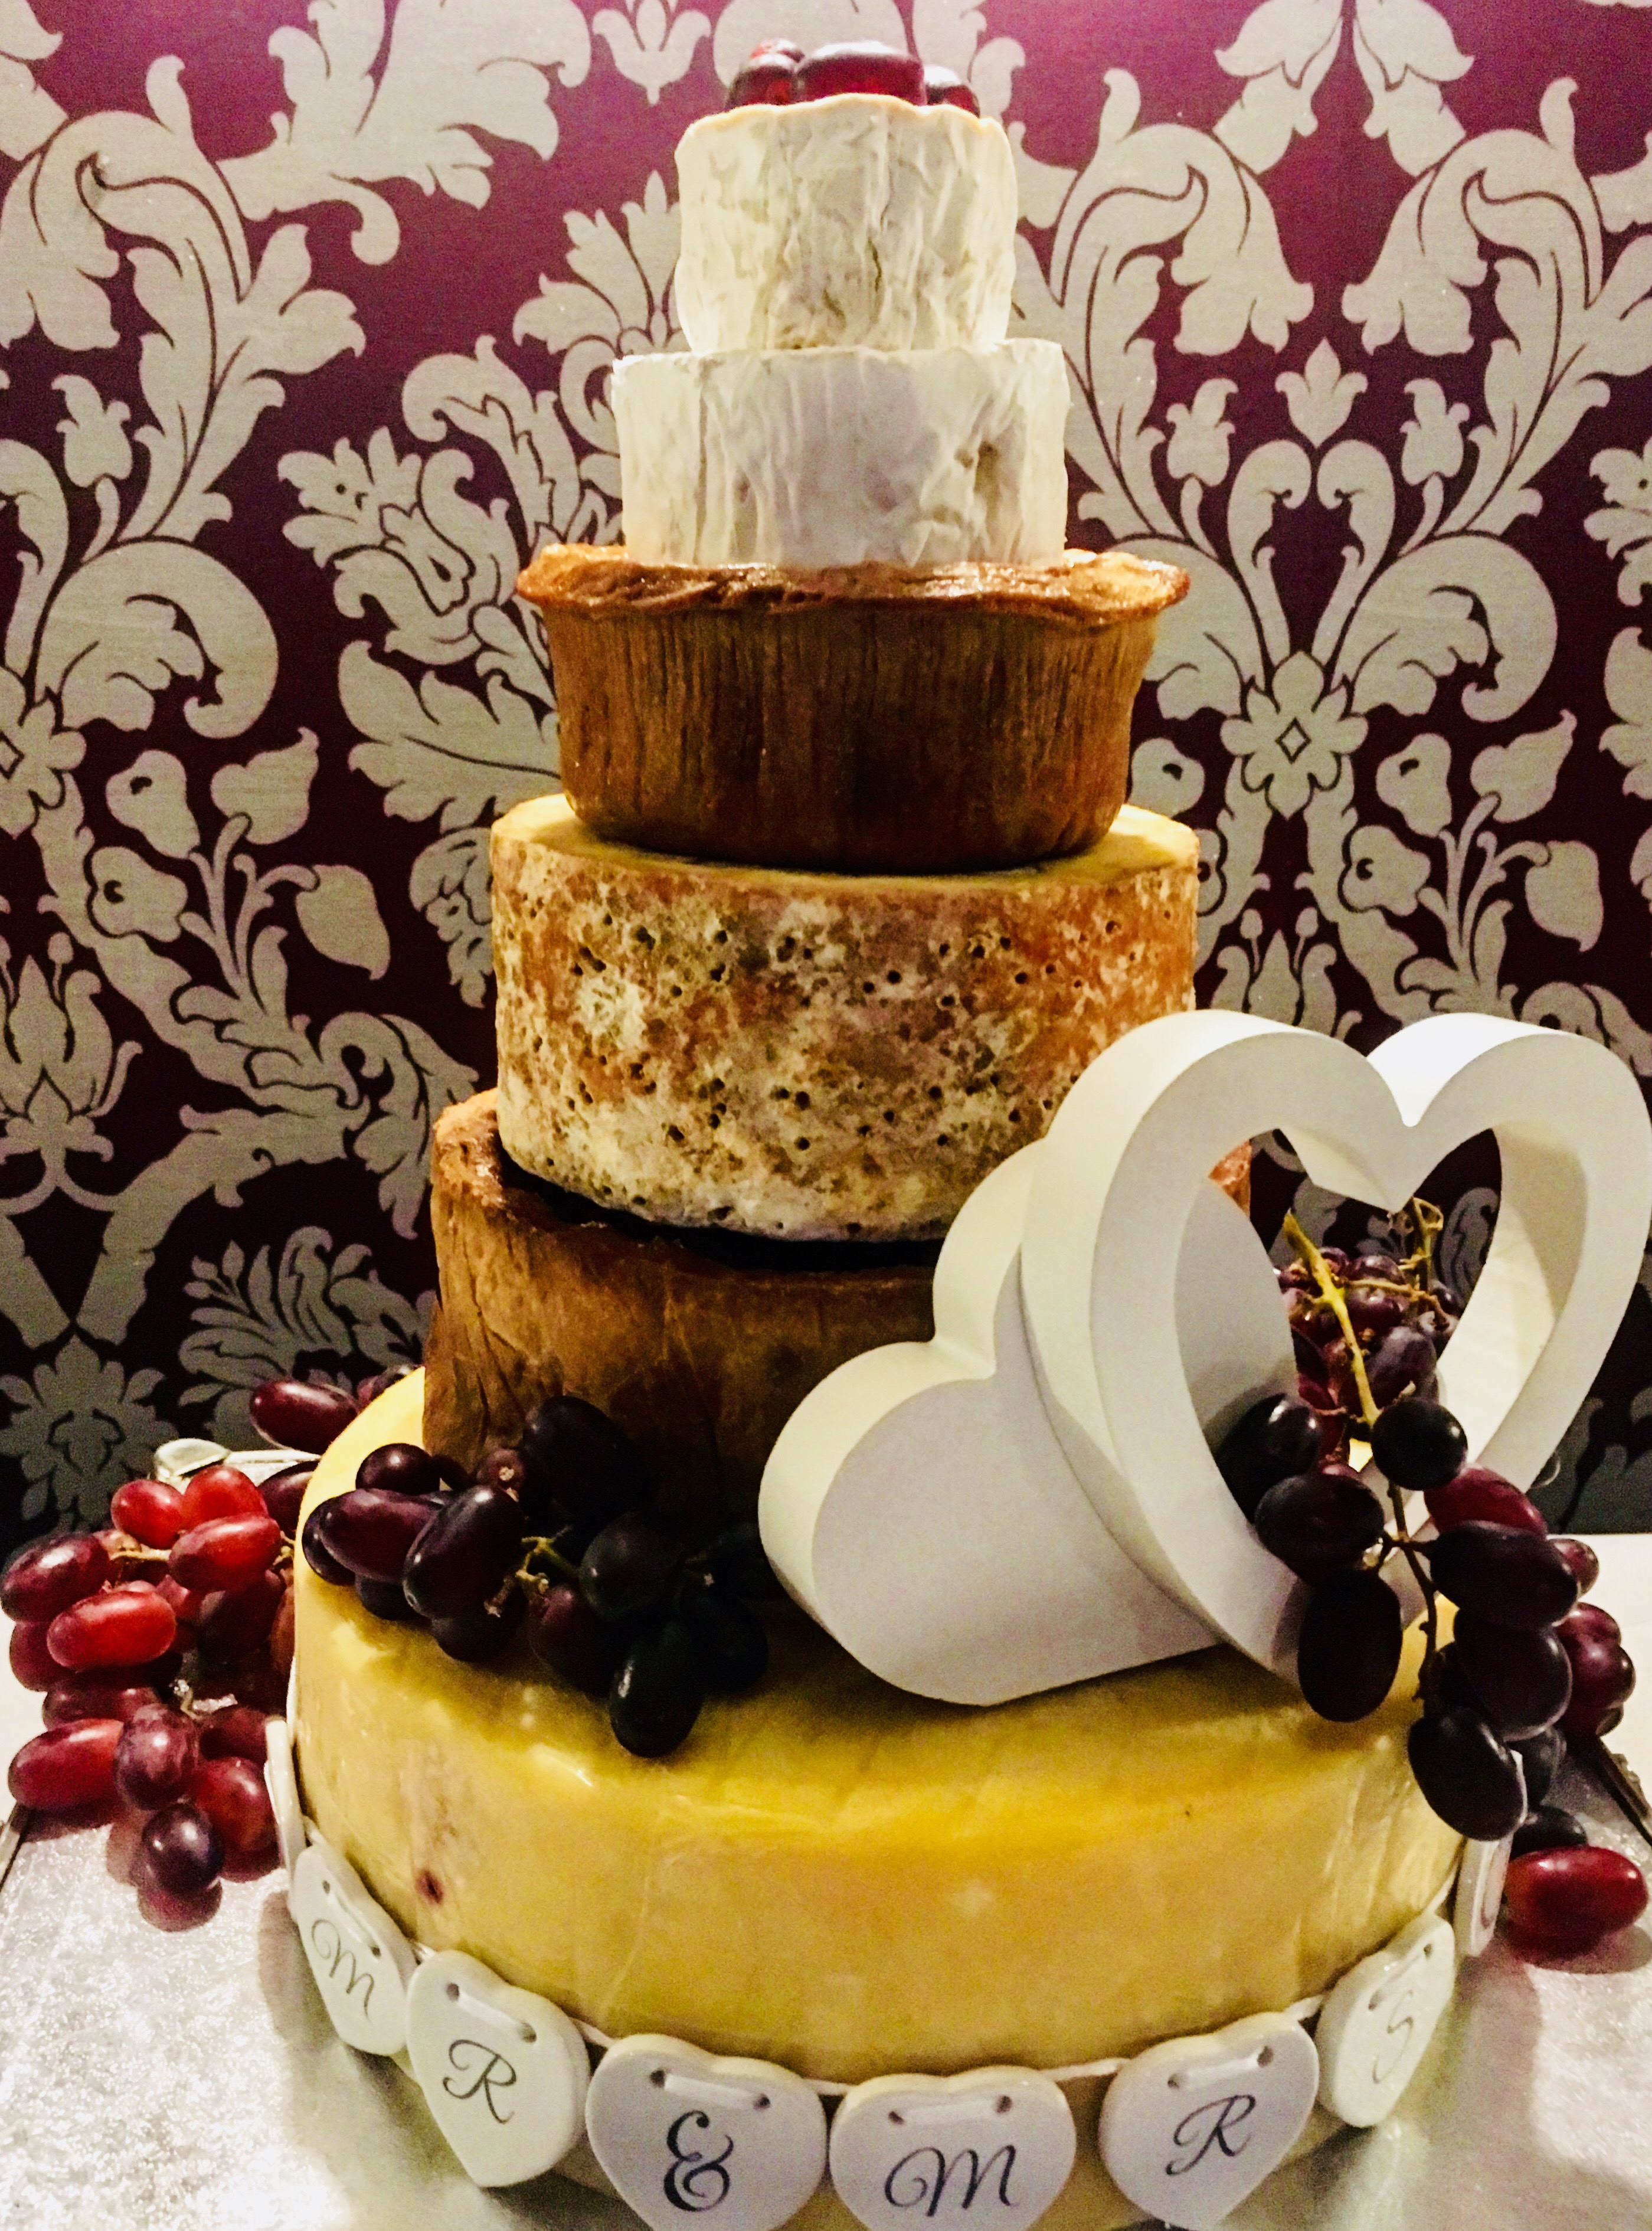 It Therefore Probably Comes As Little Surprise That My Ultimate Wedding Cake Was Going To Have Involve Beloved Cheese